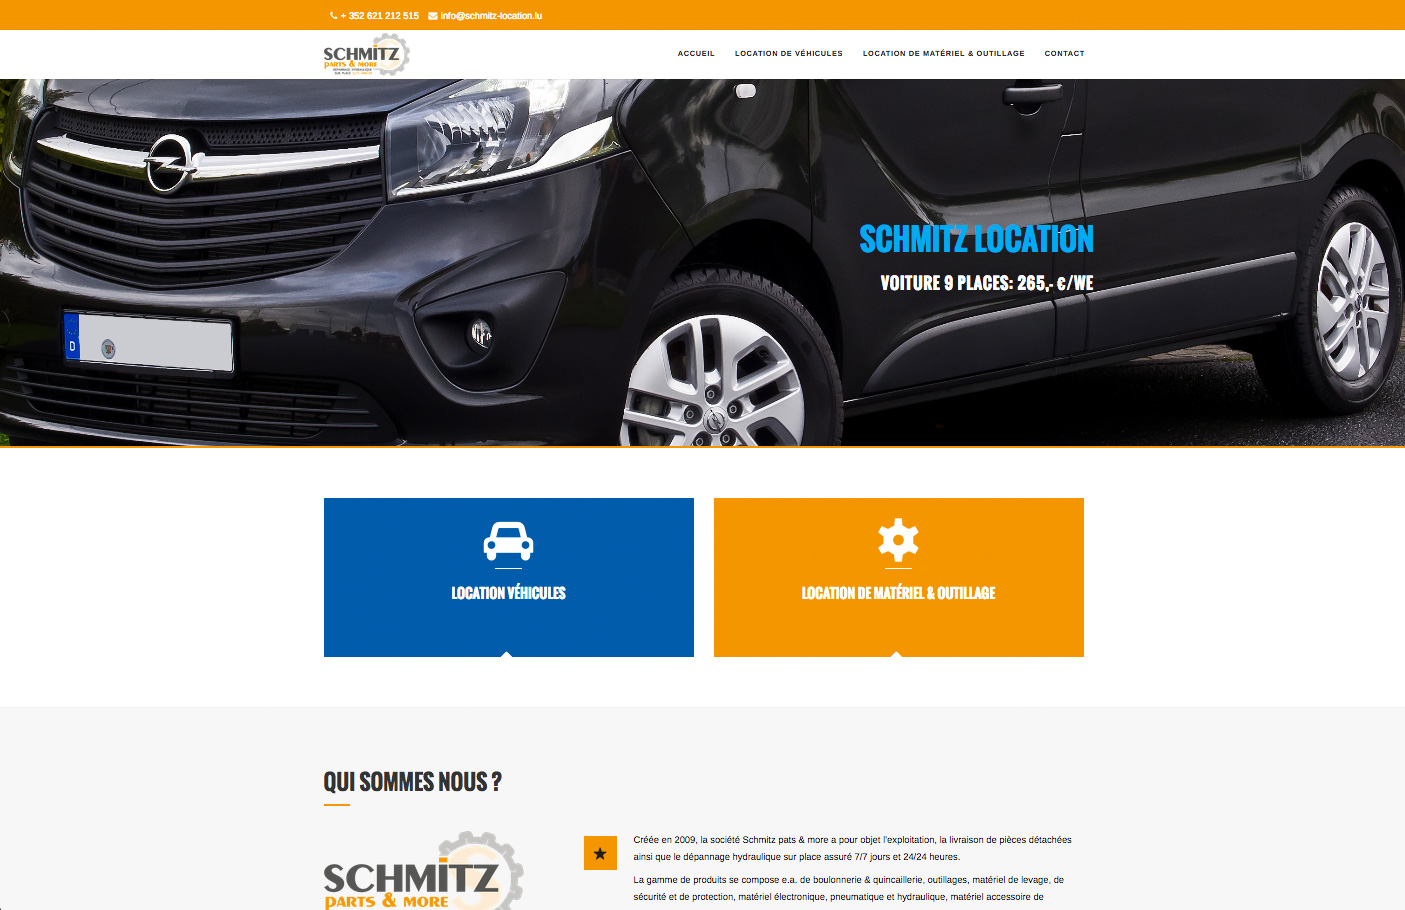 www.schmitz-location.com